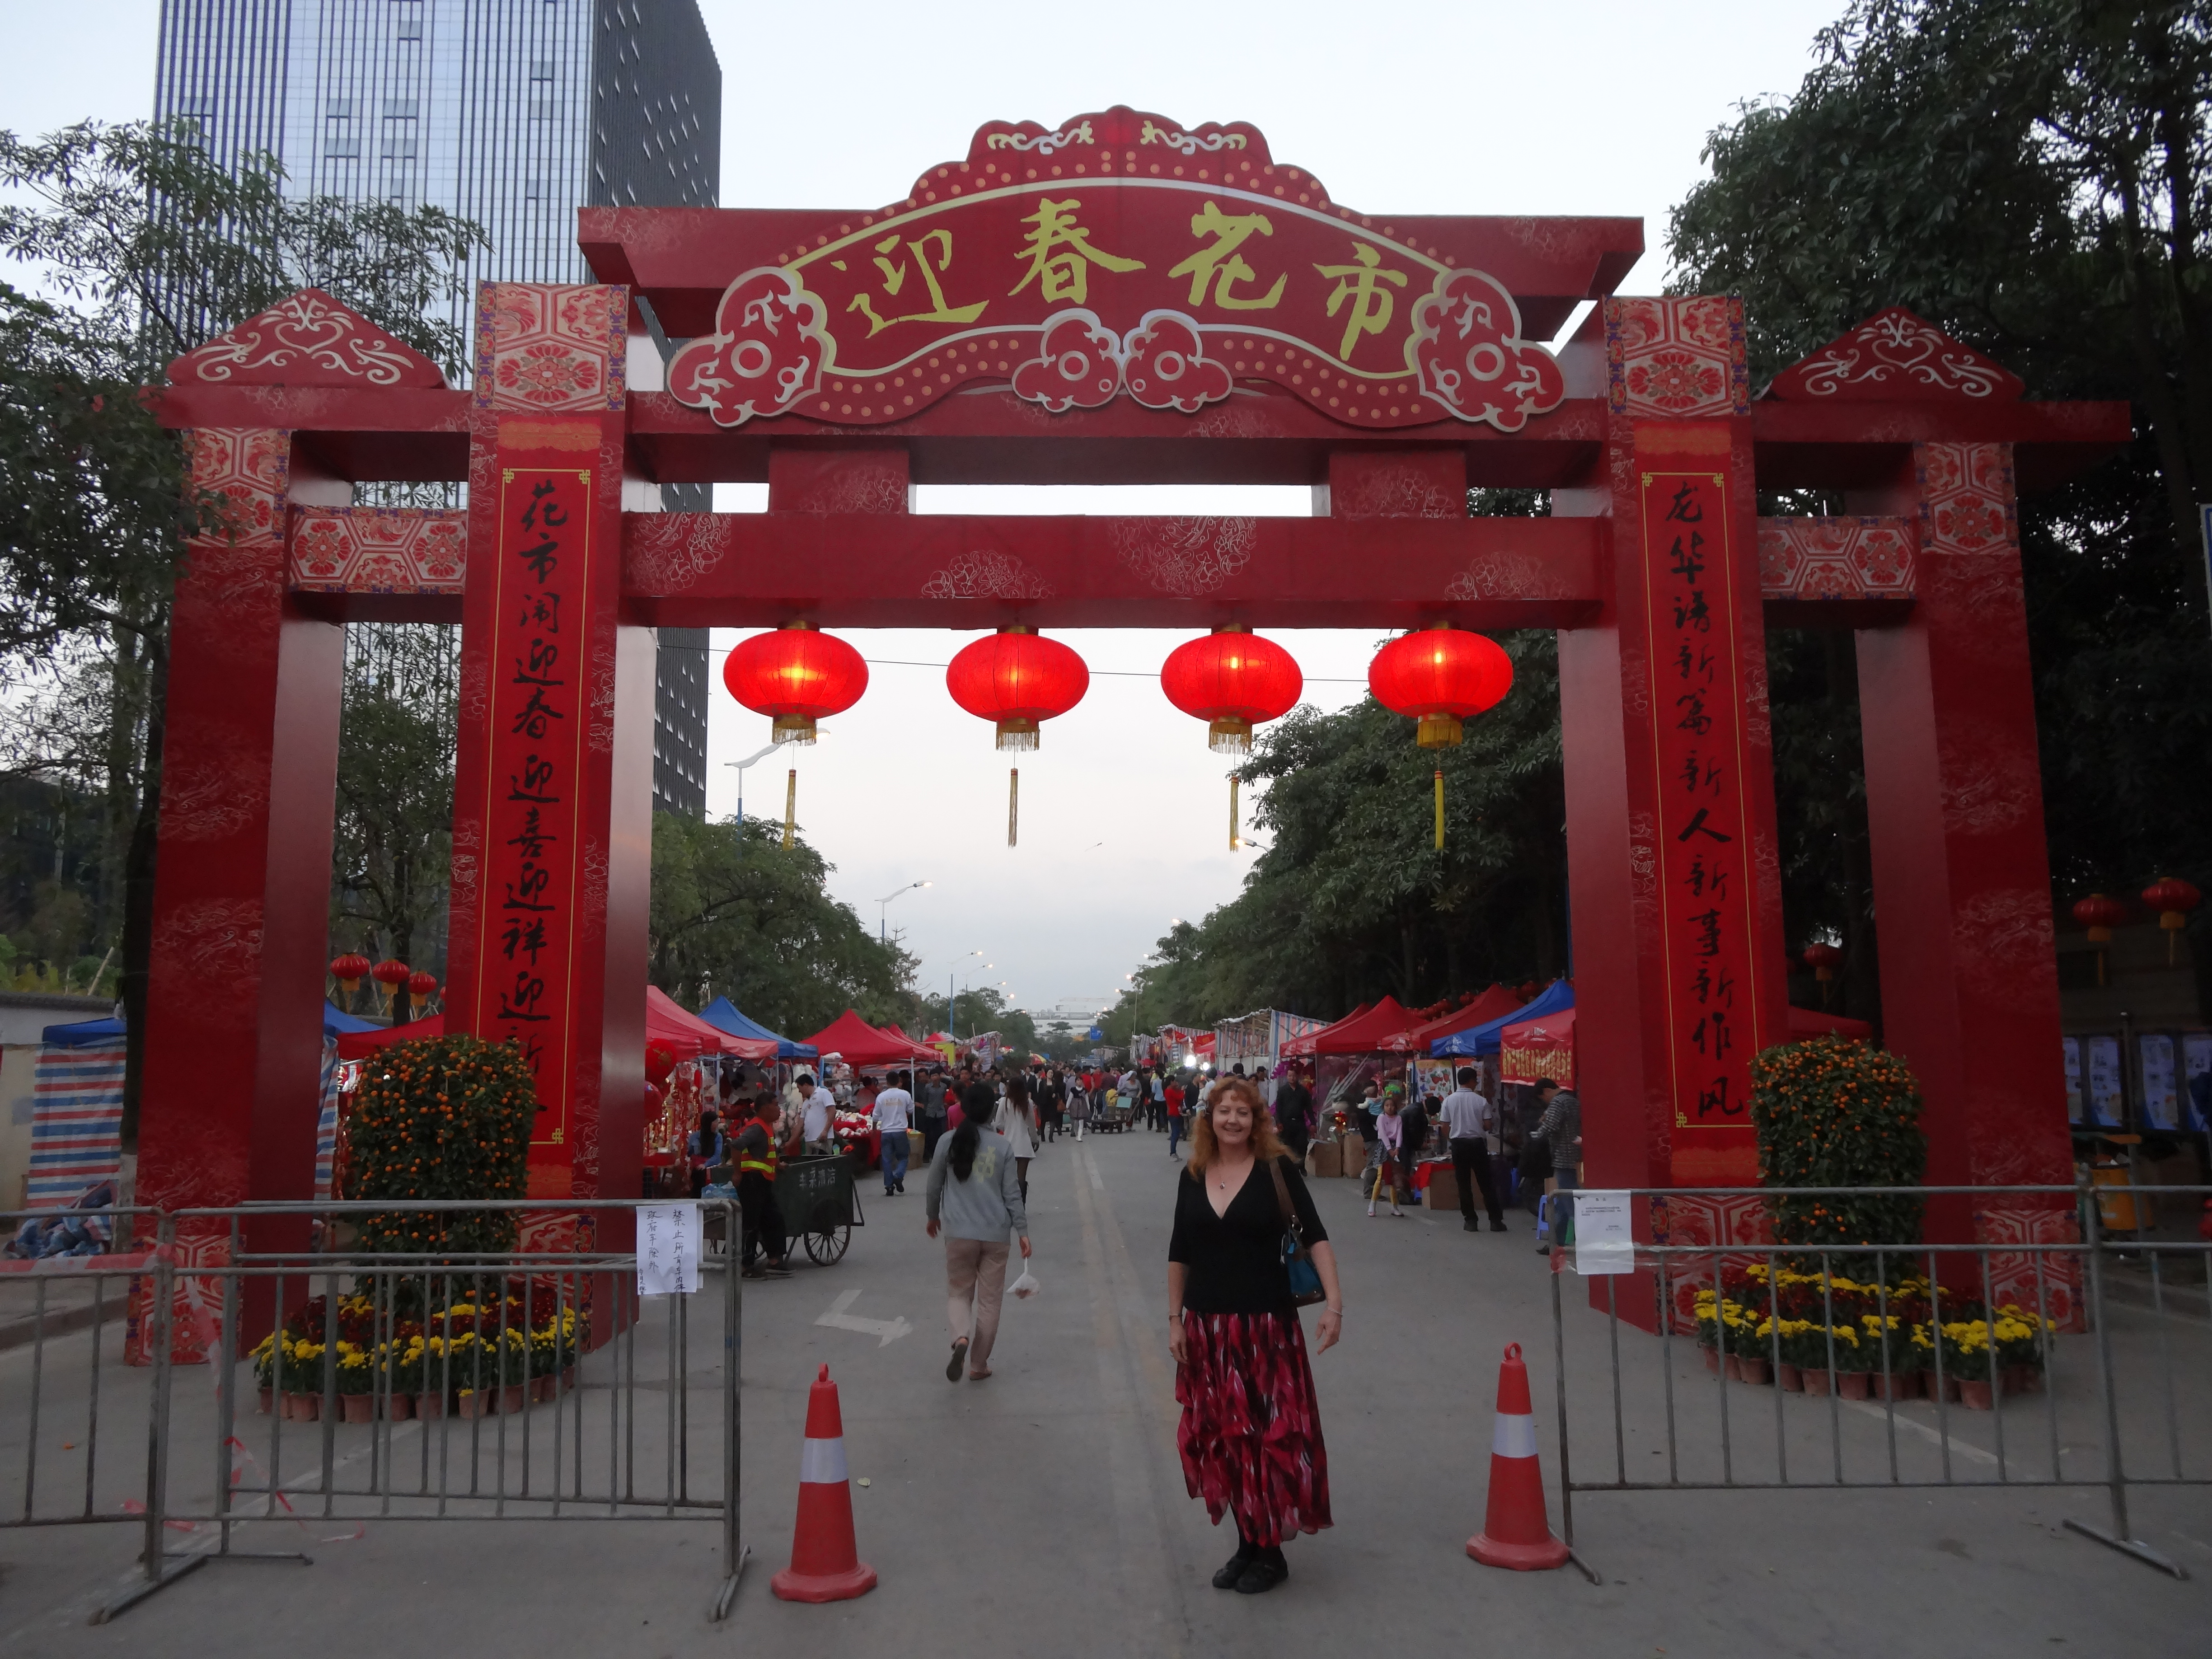 ... front of the entrance to the Longhua Chinese New Year flower market